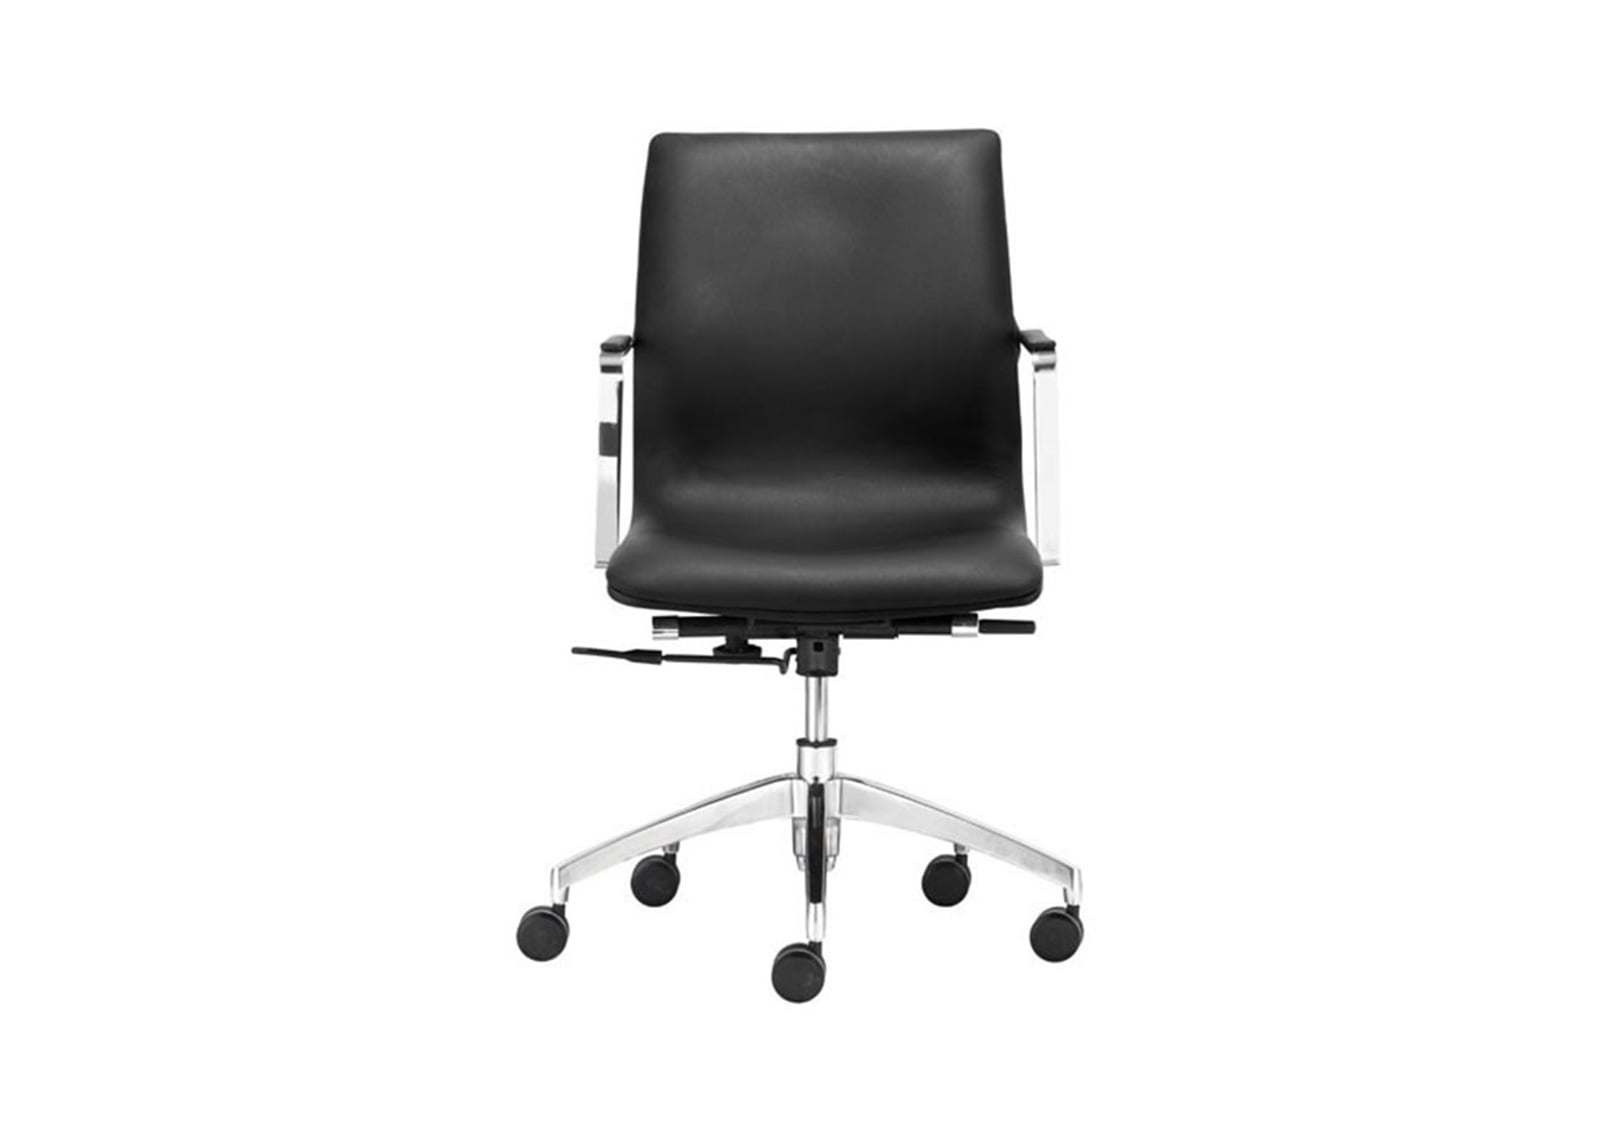 chair back covers for office chairs wheelchair guy that died herald low black furnishplus